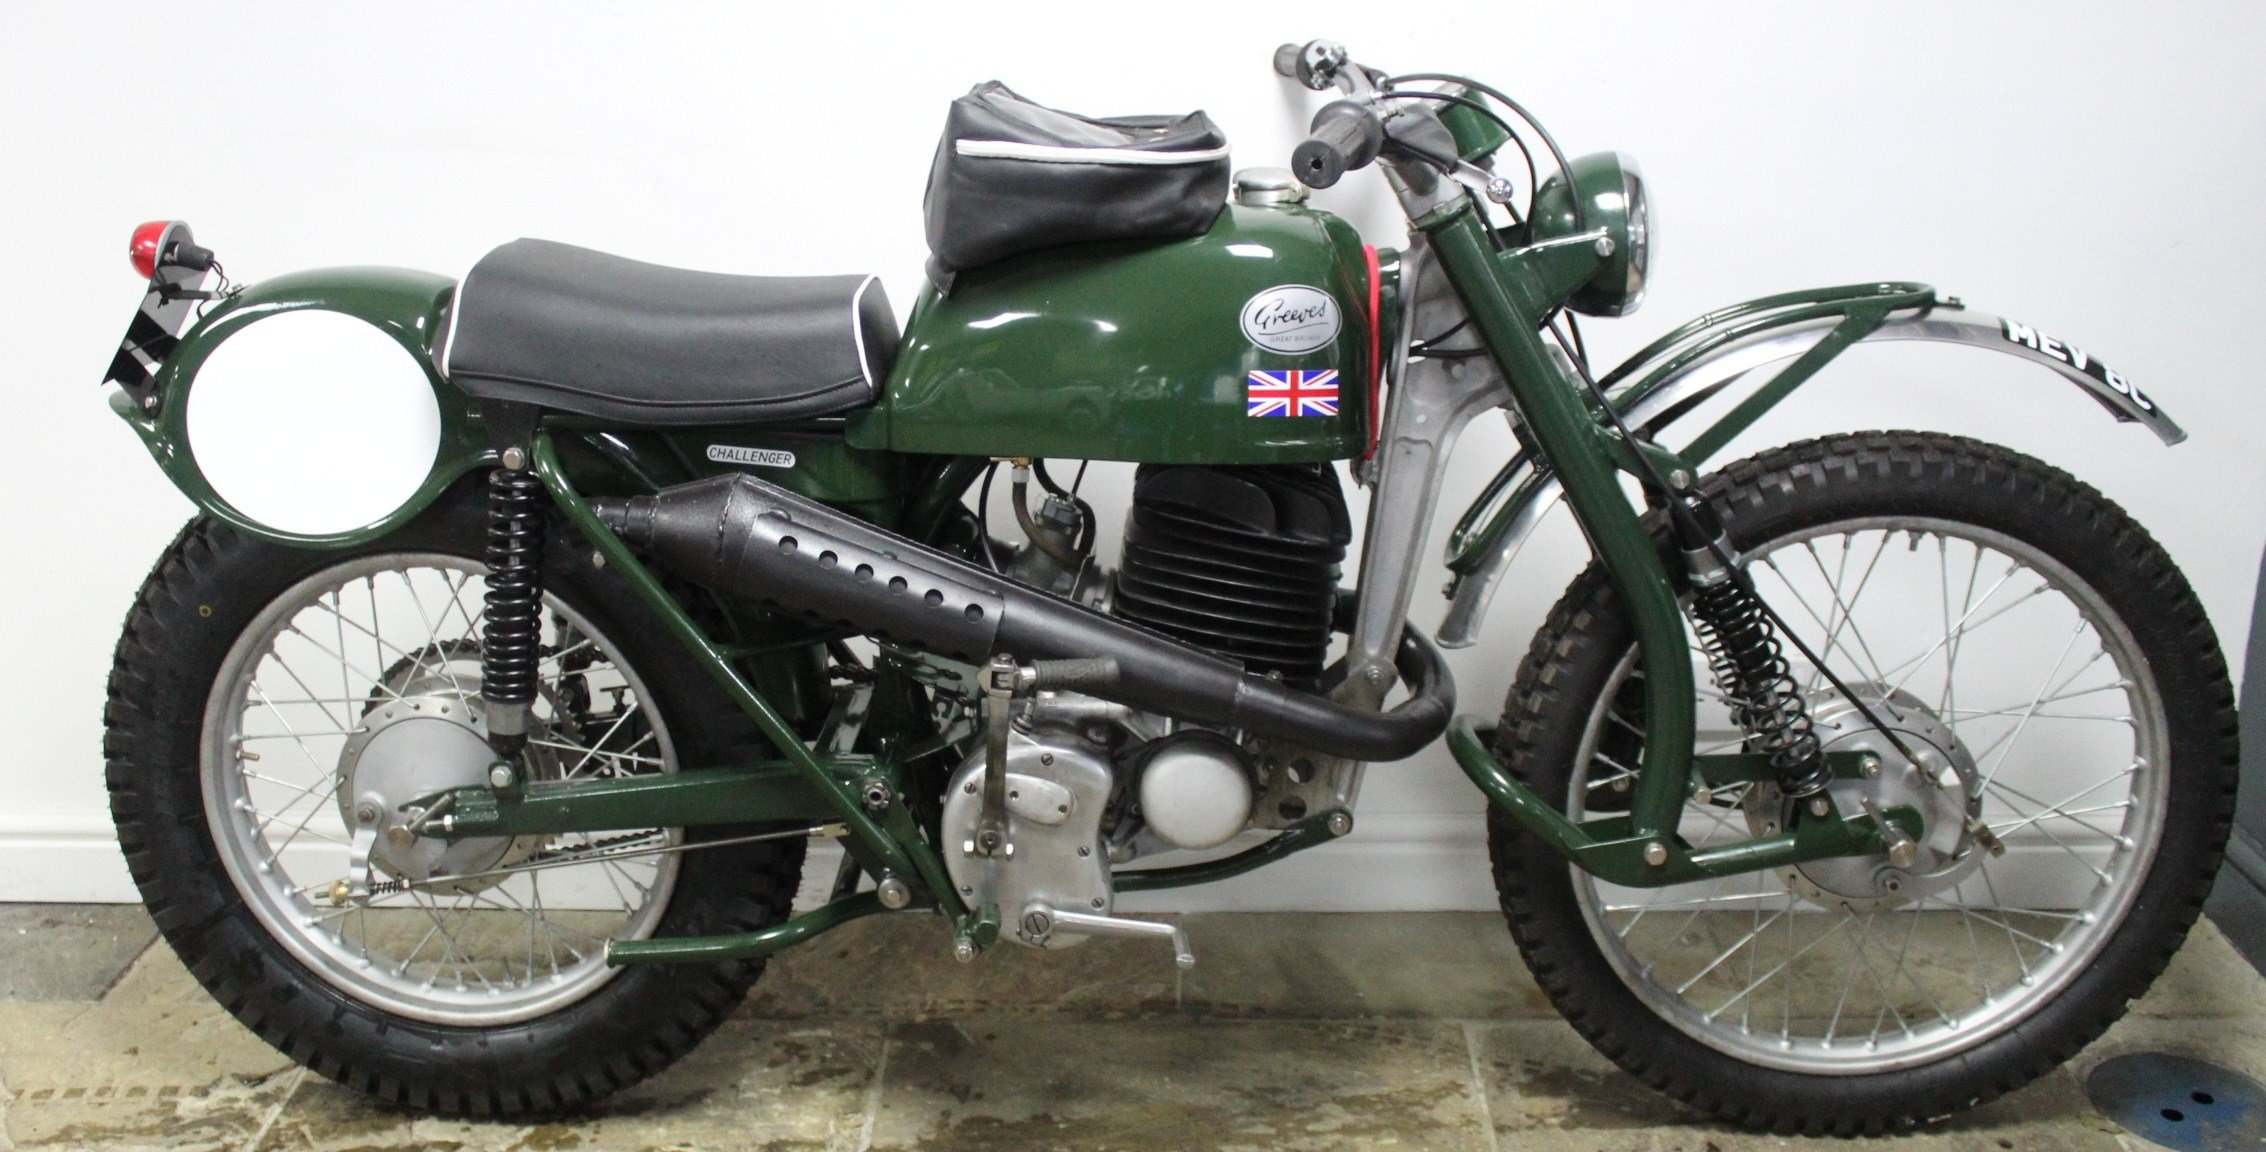 1965 Greeves  250 cc Works ISDT Bike Registered MEV8C SOLD (picture 3 of 6)